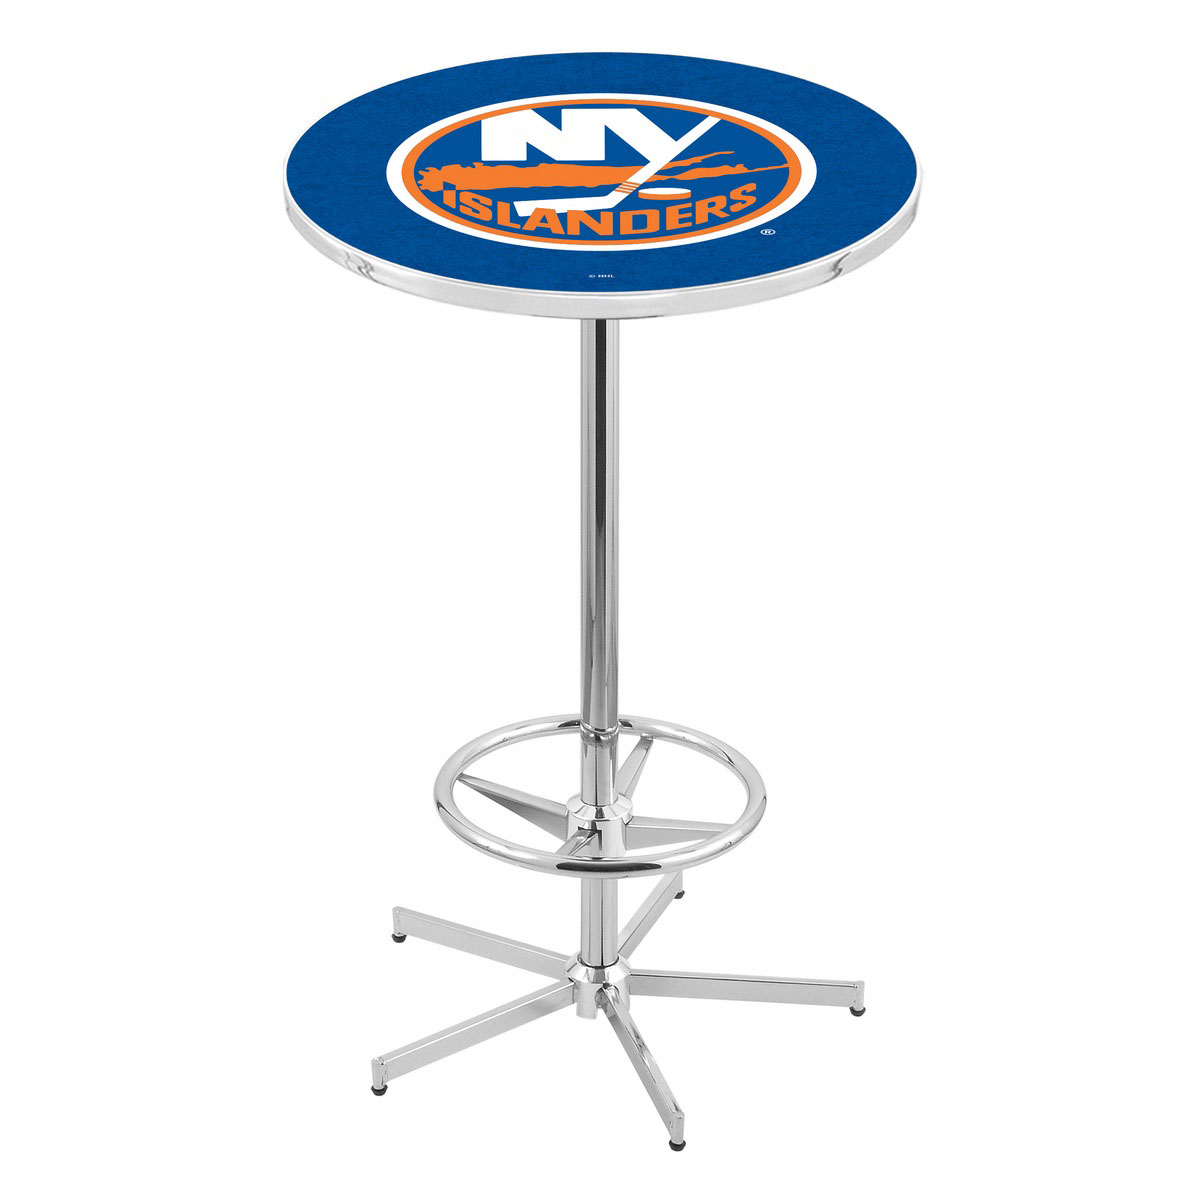 Stylish Chrome York Islanders Pub Table Product Photo